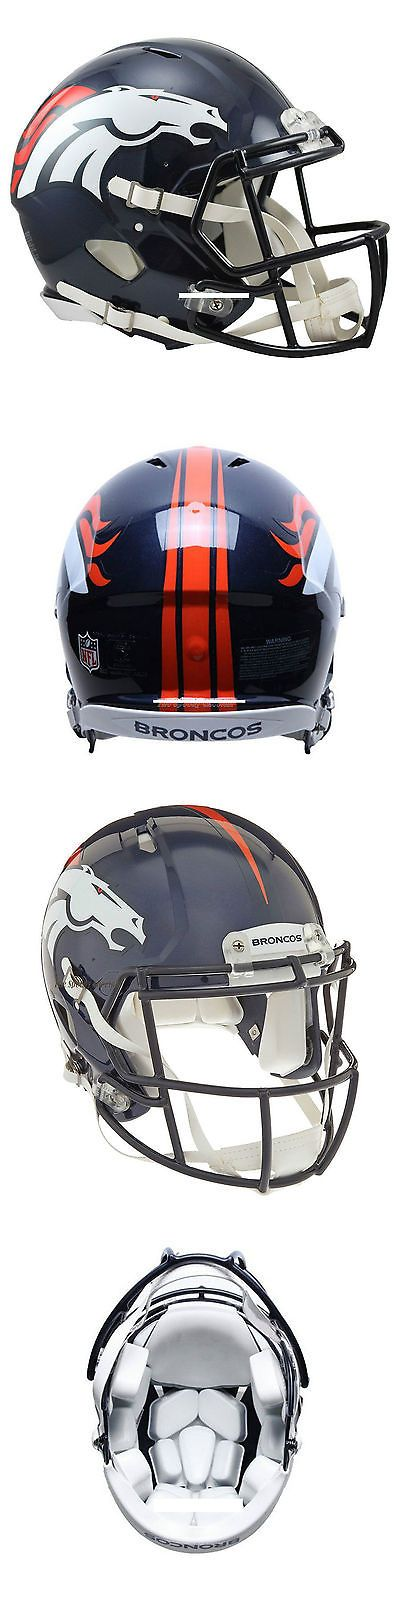 Helmets and Hats 21222: Denver Broncos Riddell Authentic Speed Football Helmet -> BUY IT NOW ONLY: $199.99 on eBay!